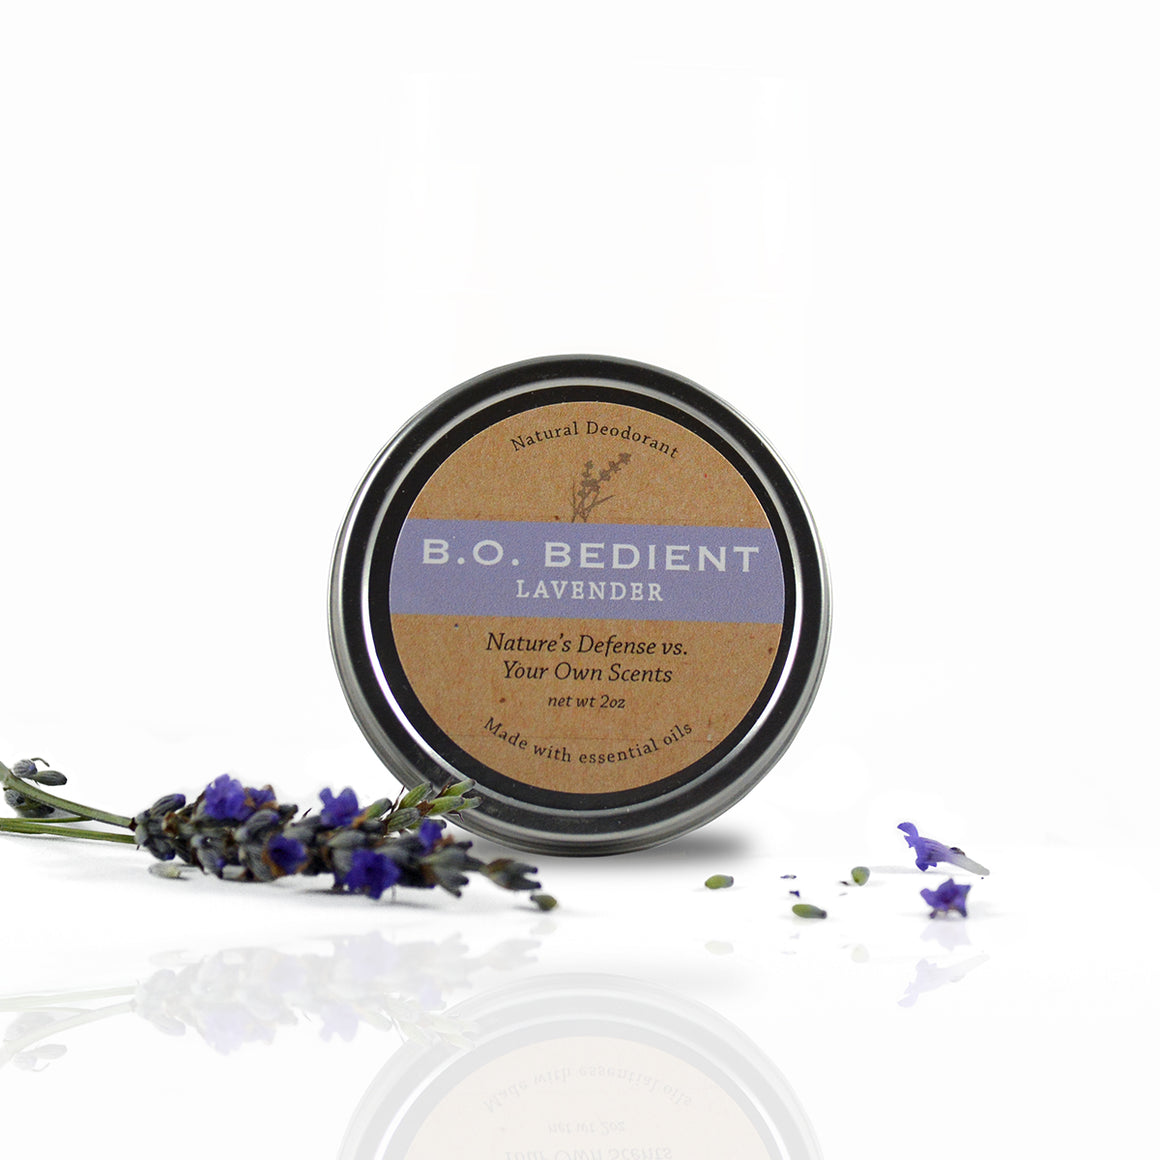 All Natural Deodorant - Lavender Tin